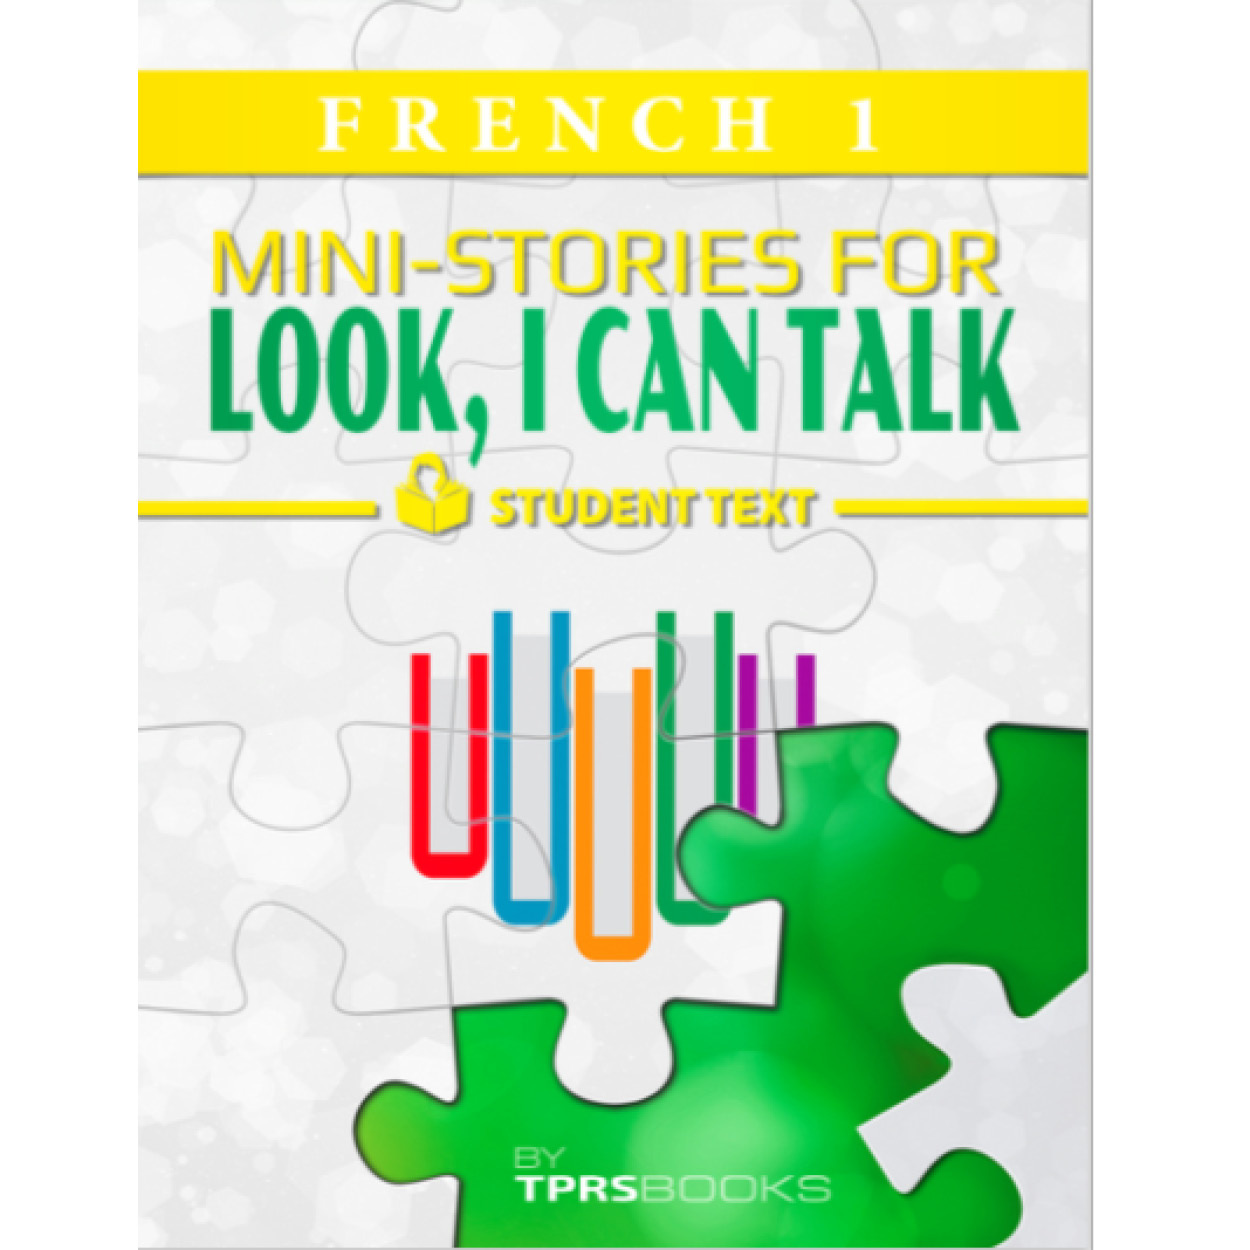 Frans 1 - Look, I can talk! Werkboek